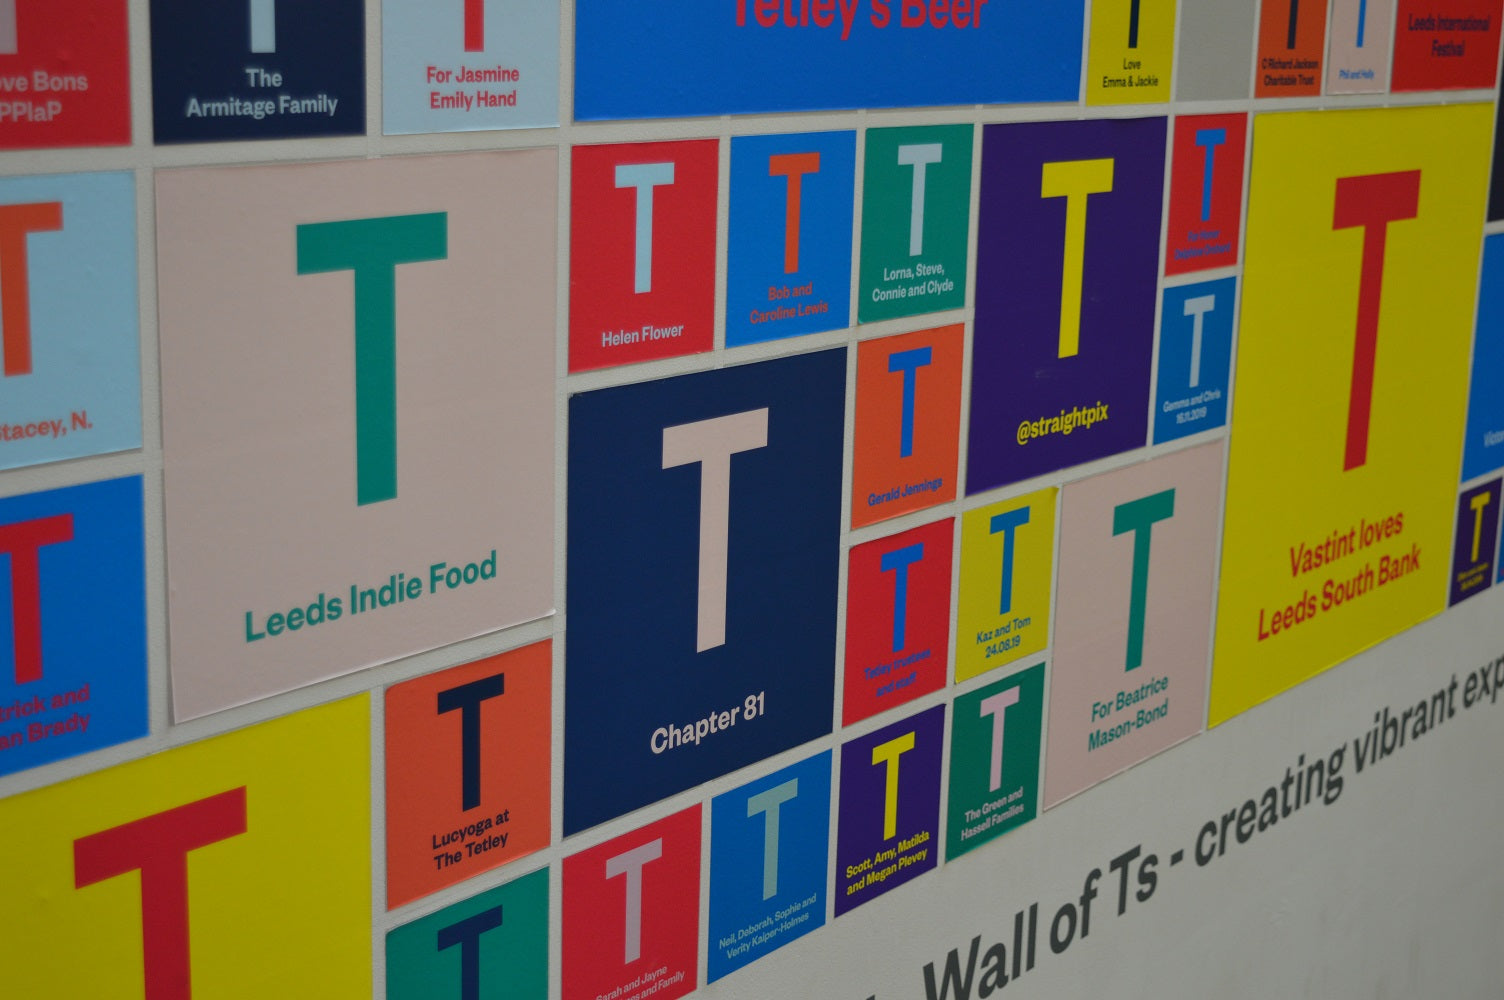 Wall of T — The Tetley Shop